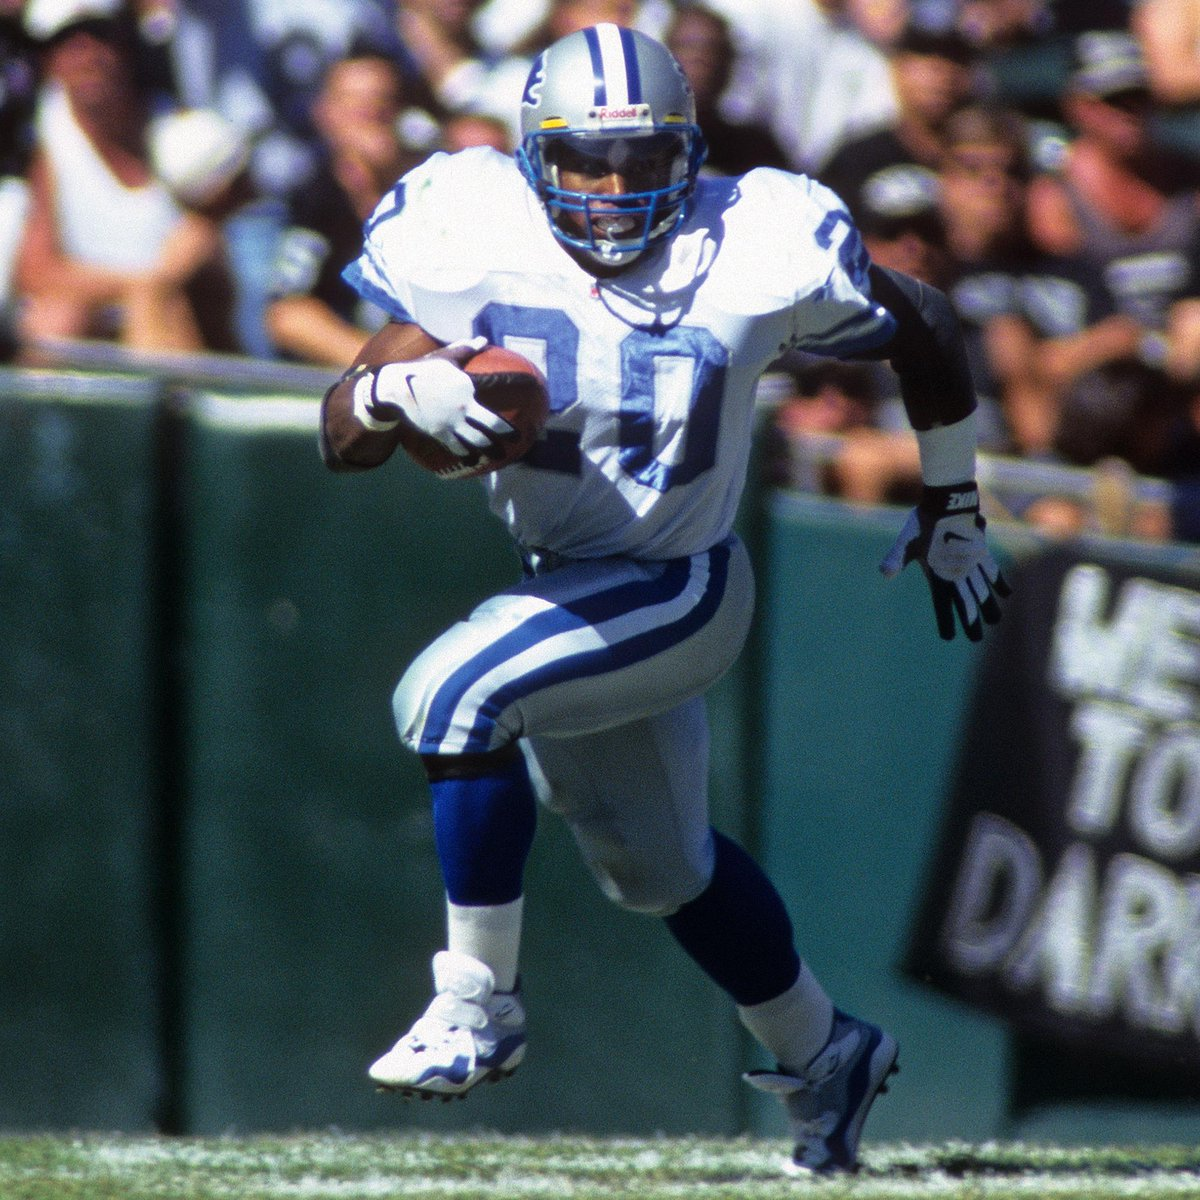 10x Pro Bowler.  10x All-Pro.  No. 3 on the all-time rushing list.  HAPPY BIRTHDAY legendary RB @BarrySanders! 🎉🎂